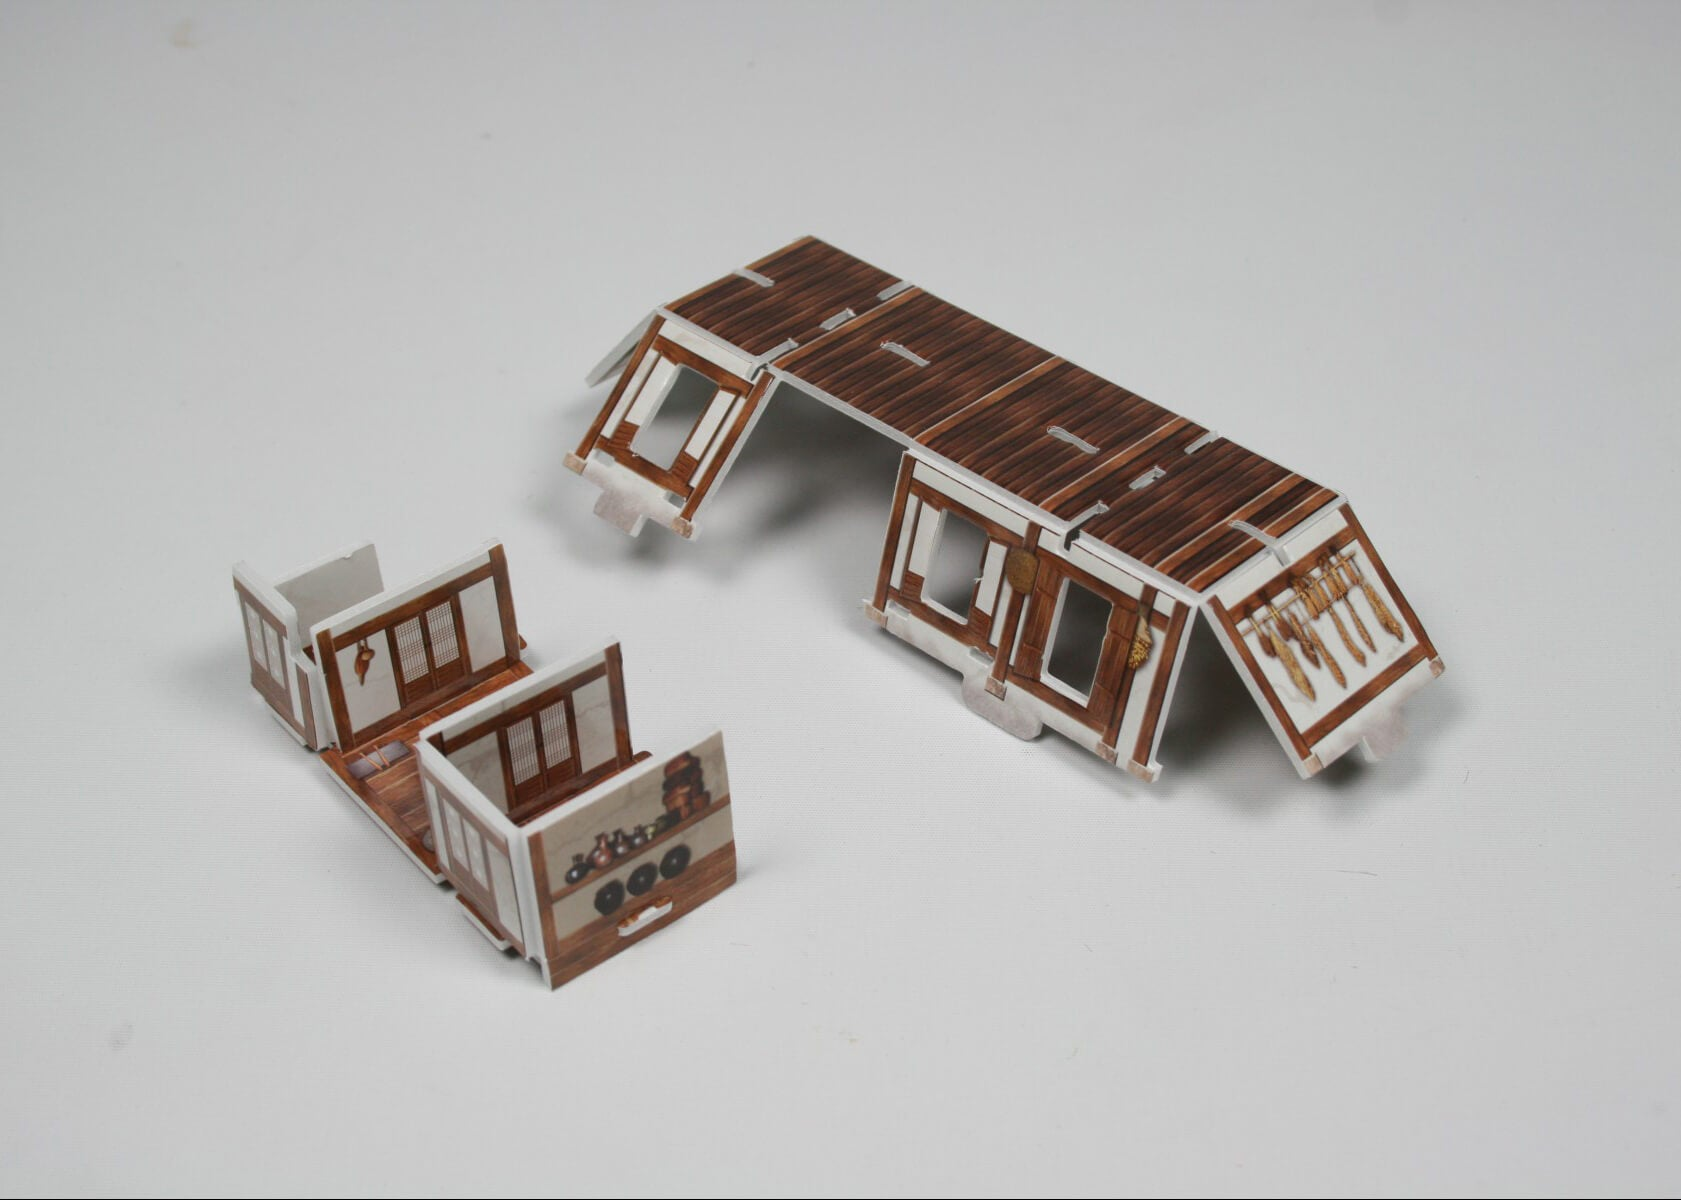 3D Puzzle - Korean Traditional Thatched-Roof House